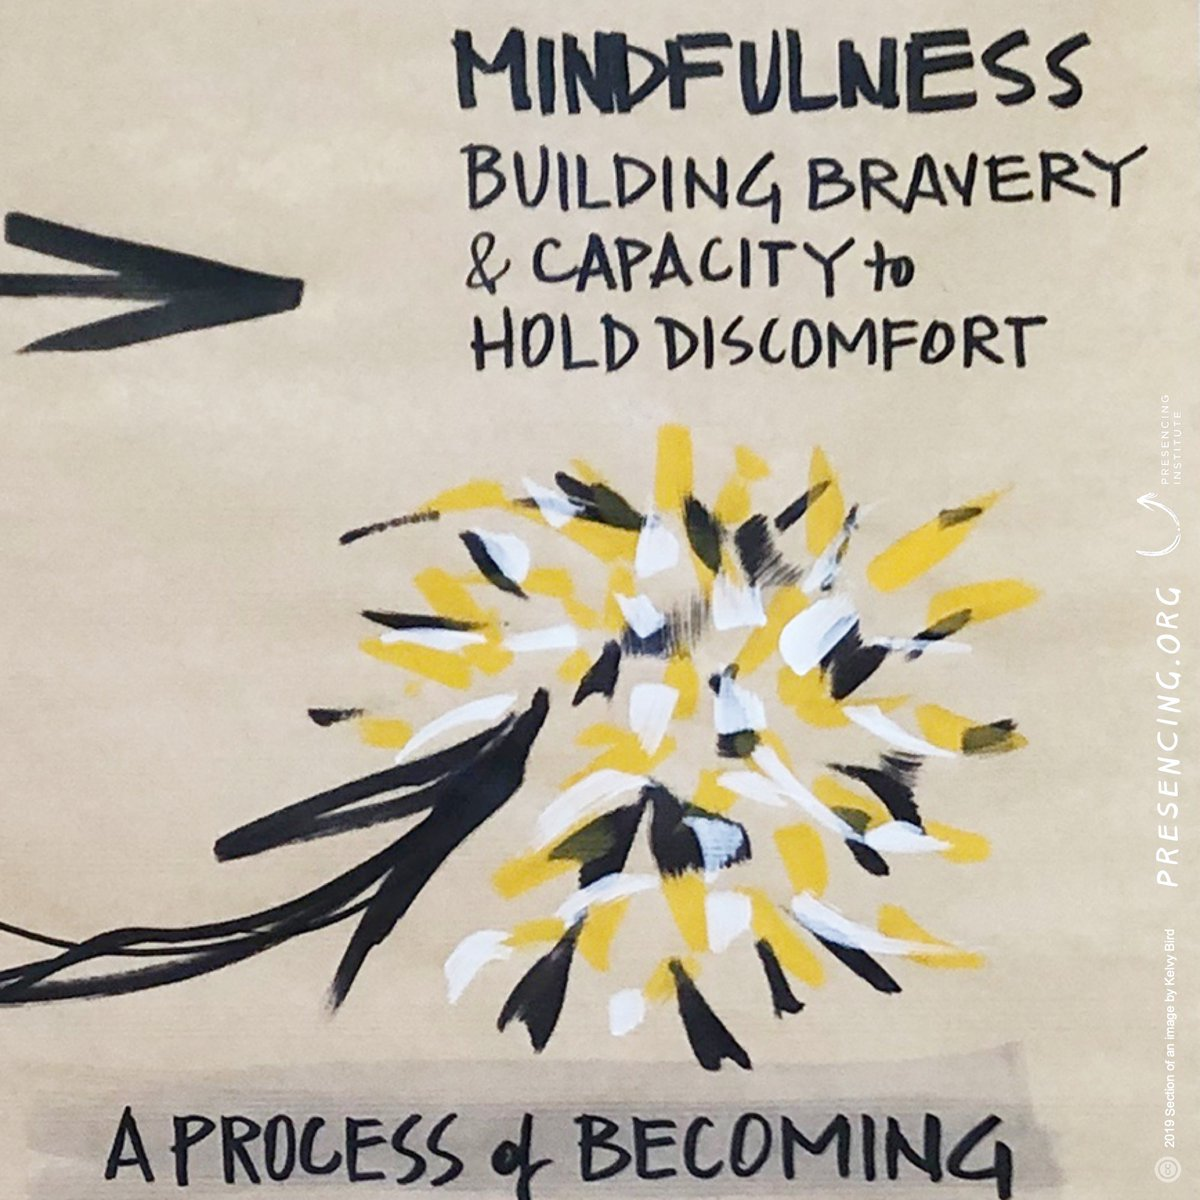 Building bravery to hold discomfort #payitforward @presencing_inst bit.ly/35YD6j8